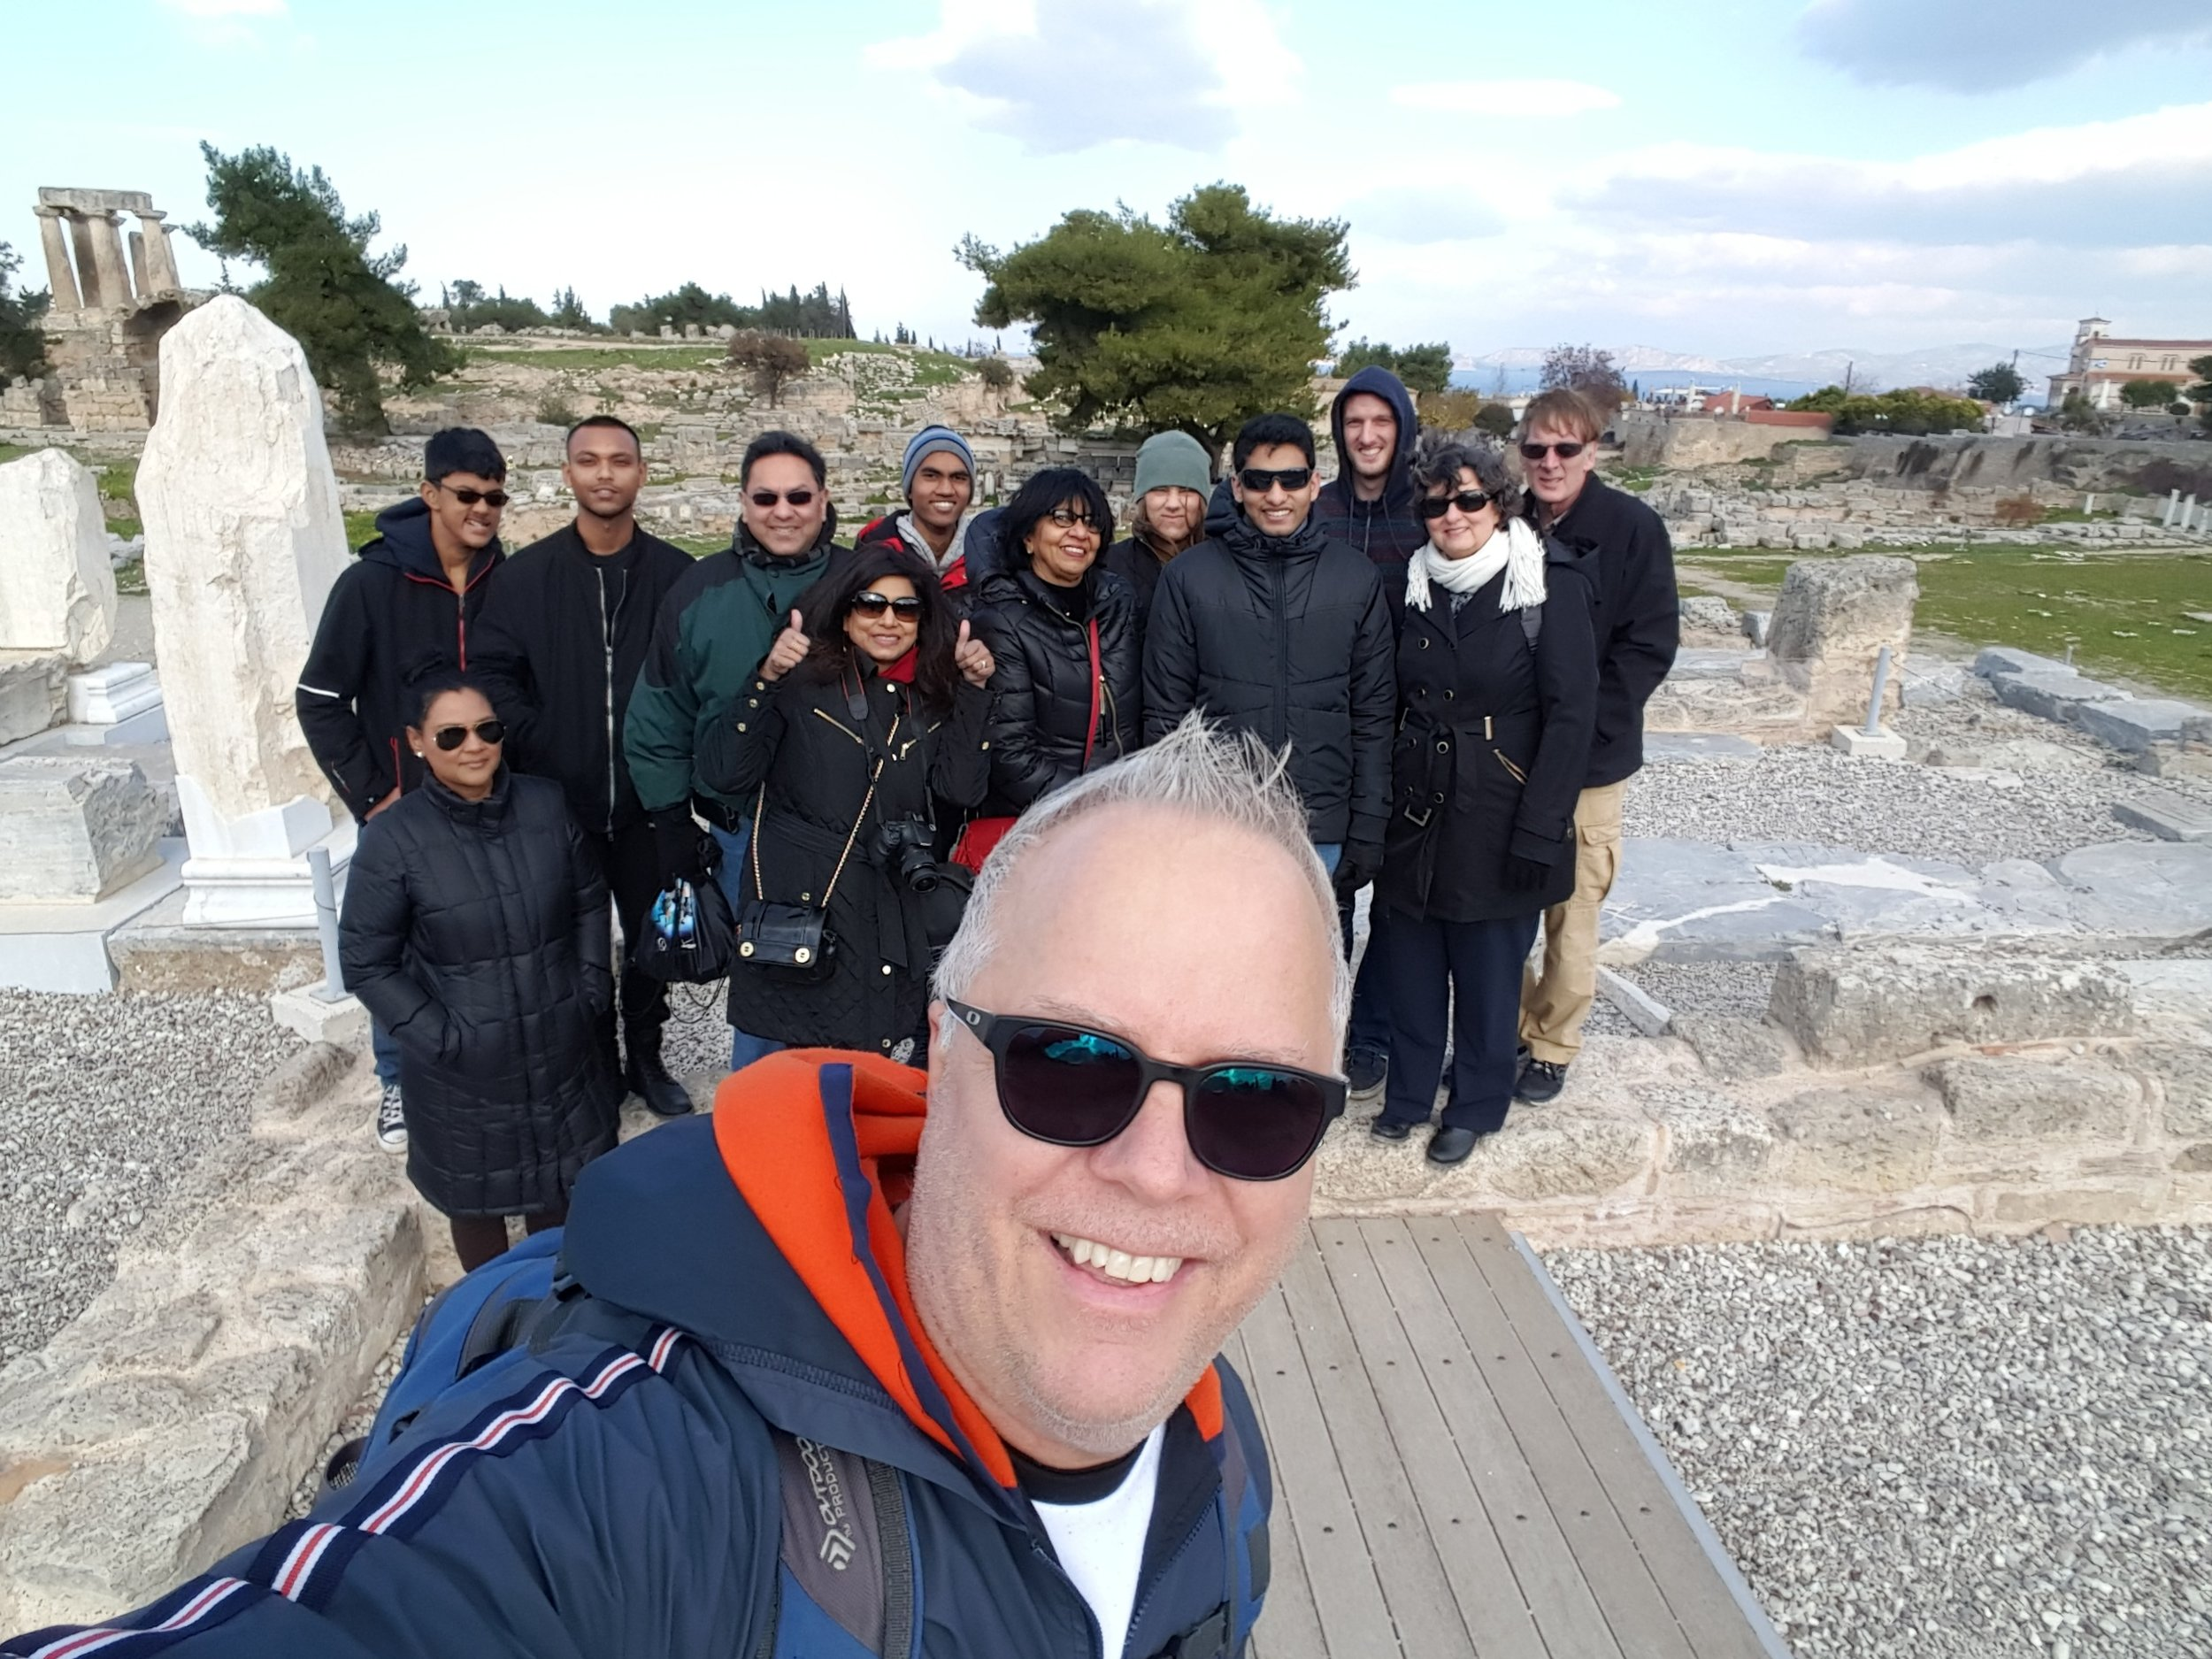 The Gateways2Life Team that served the refugees in Athens during the Christmas holidays in December, 2016.